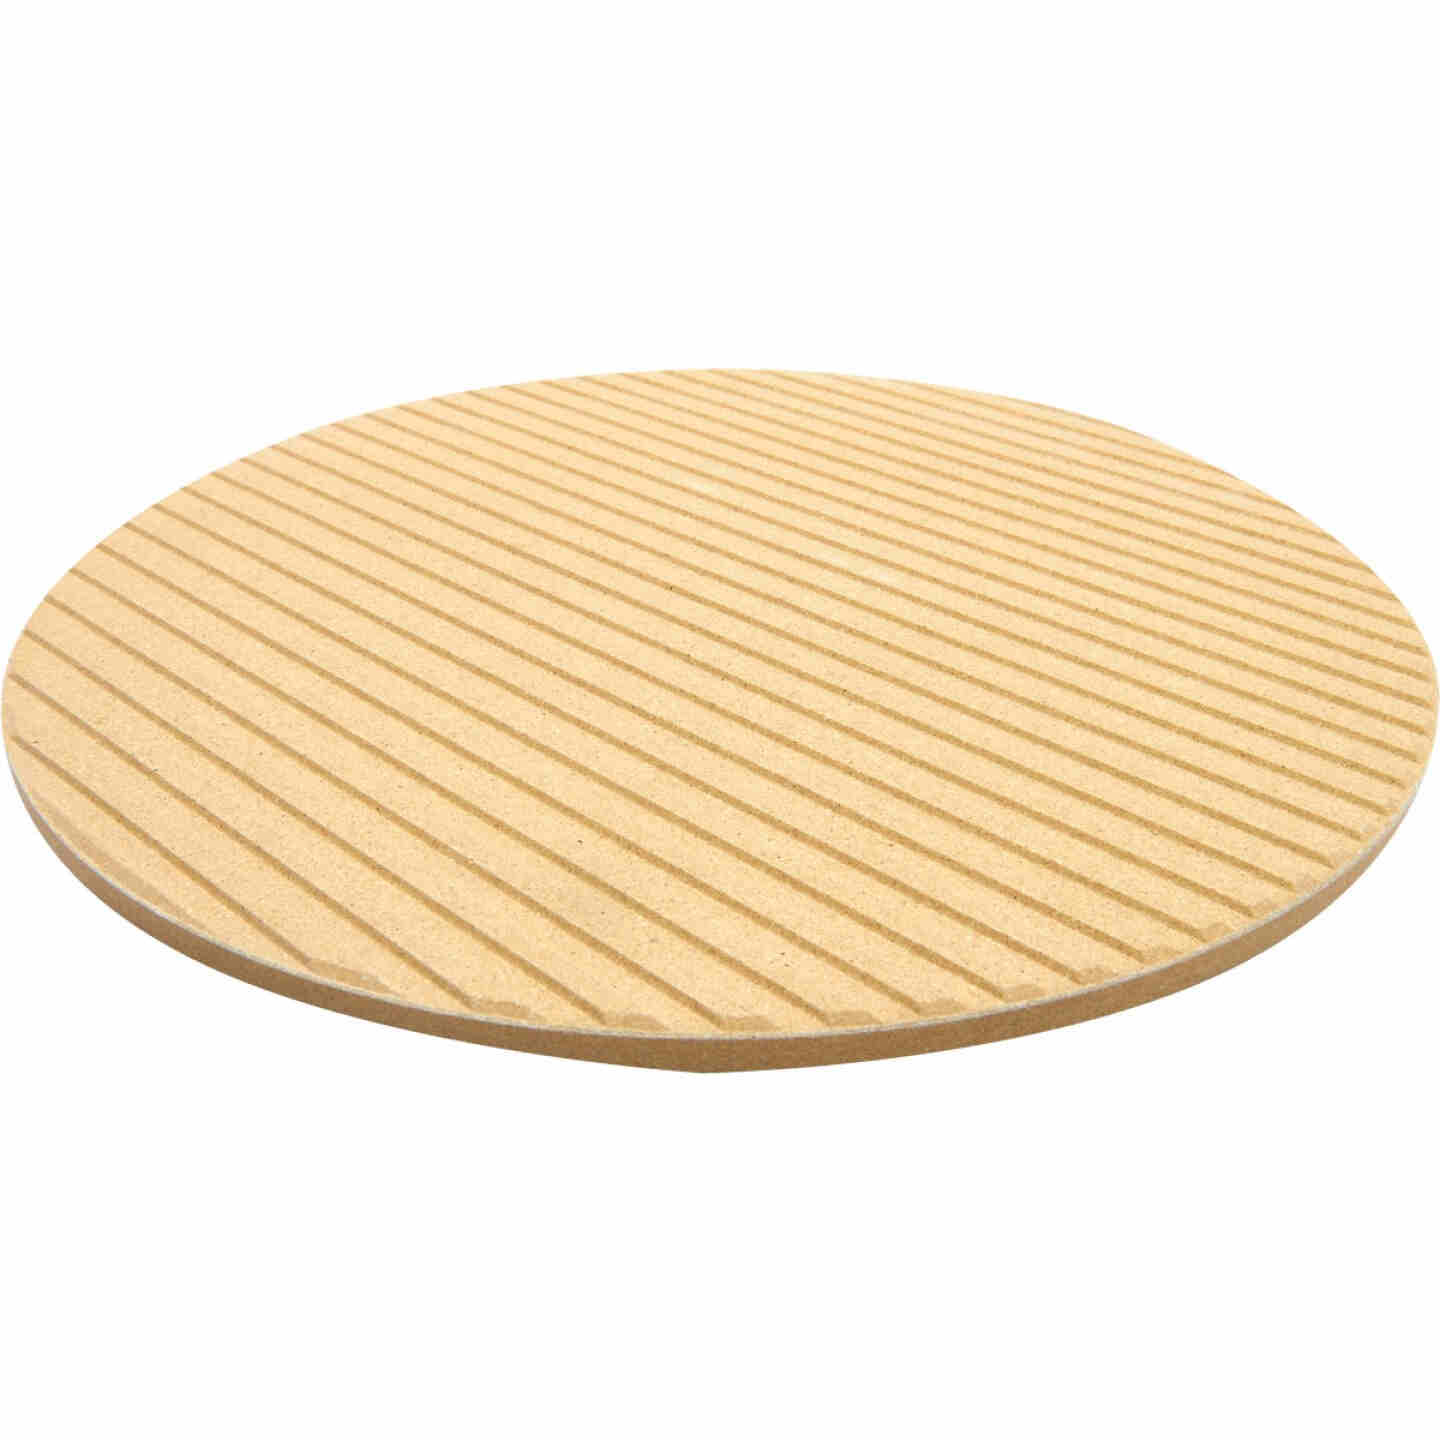 GrillPro 13 In. Ceramic Composite Pizza Stone Image 4